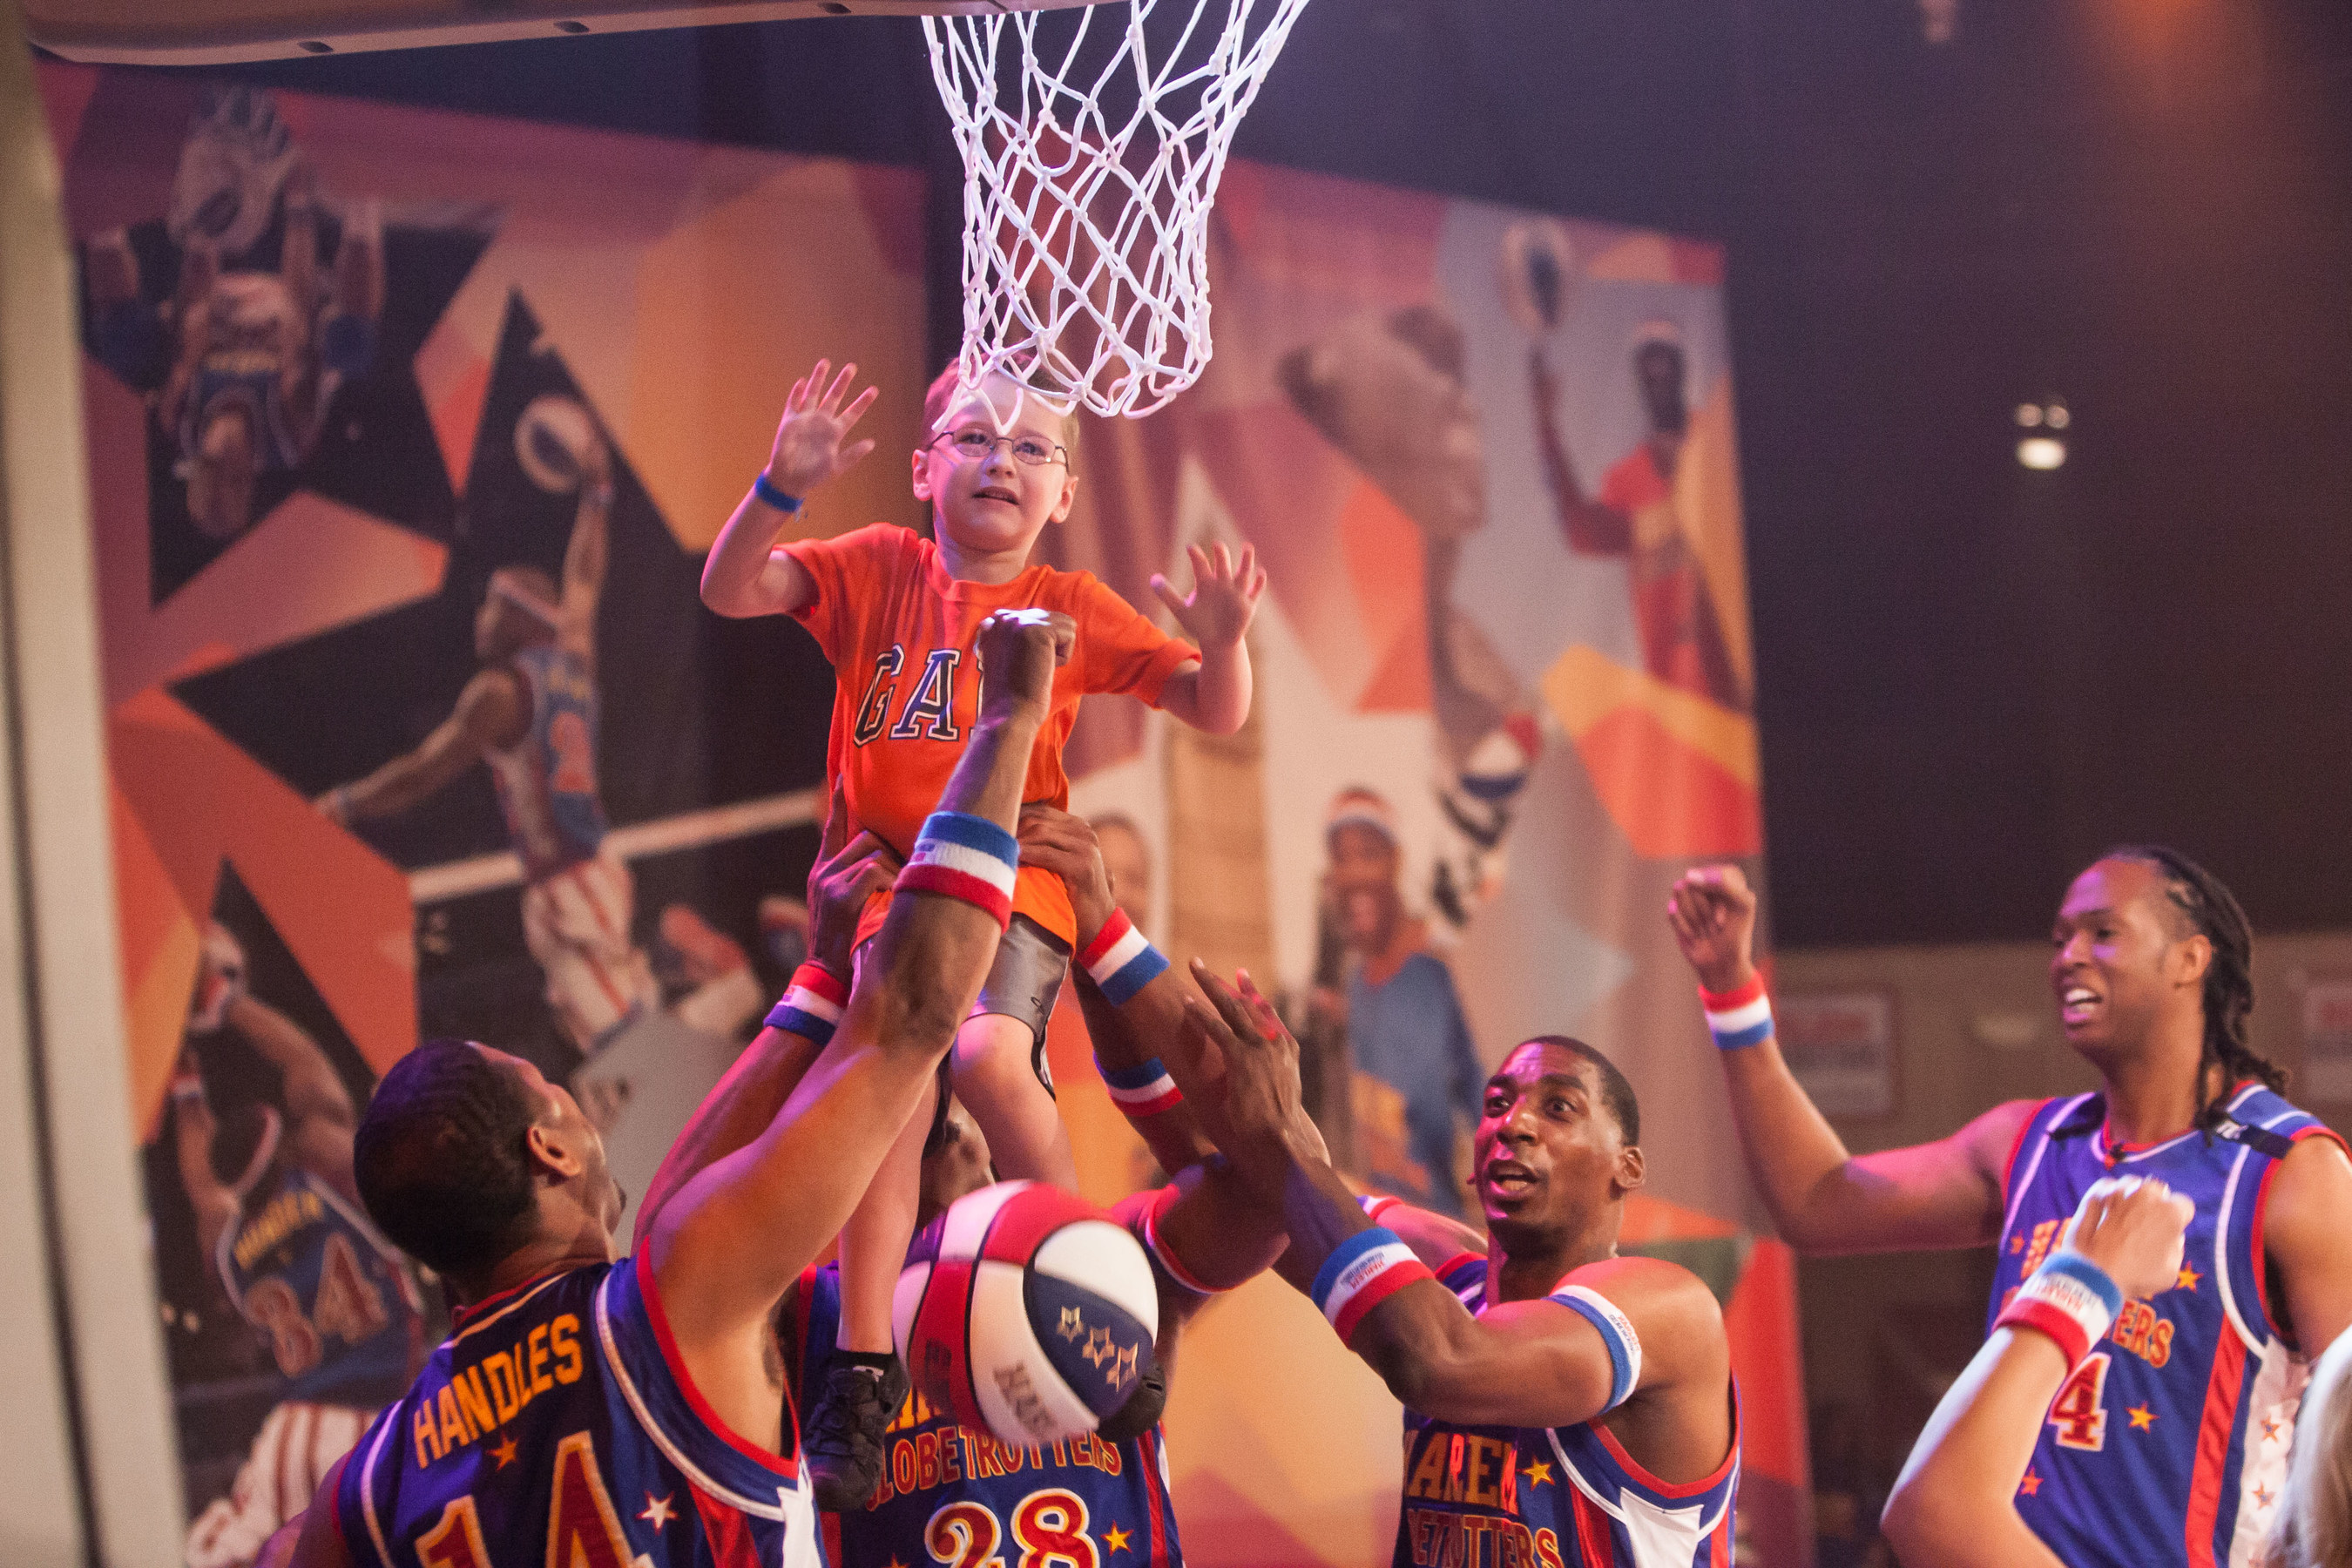 Young fans are part of the action in The Globetrotter Experience, the Harlem Globetrotters' first extended run featured at Silver Dollar City theme park in Branson, Missouri.